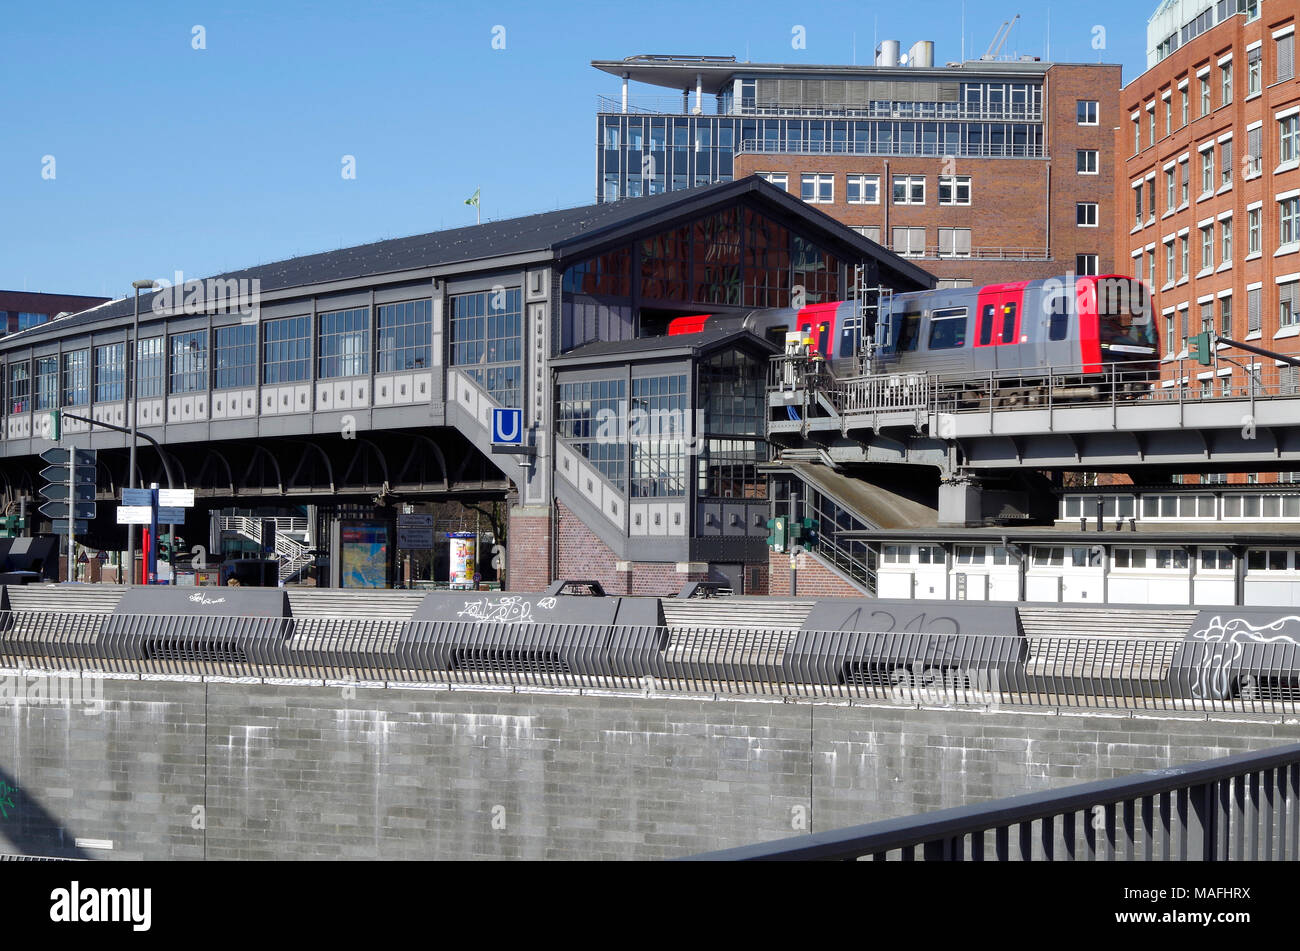 Baumwall elevated Metro station, now re-named Baumwall (Elbphilharmonie), on Line 3 of the Hamburg U-Bahn system. - Stock Image